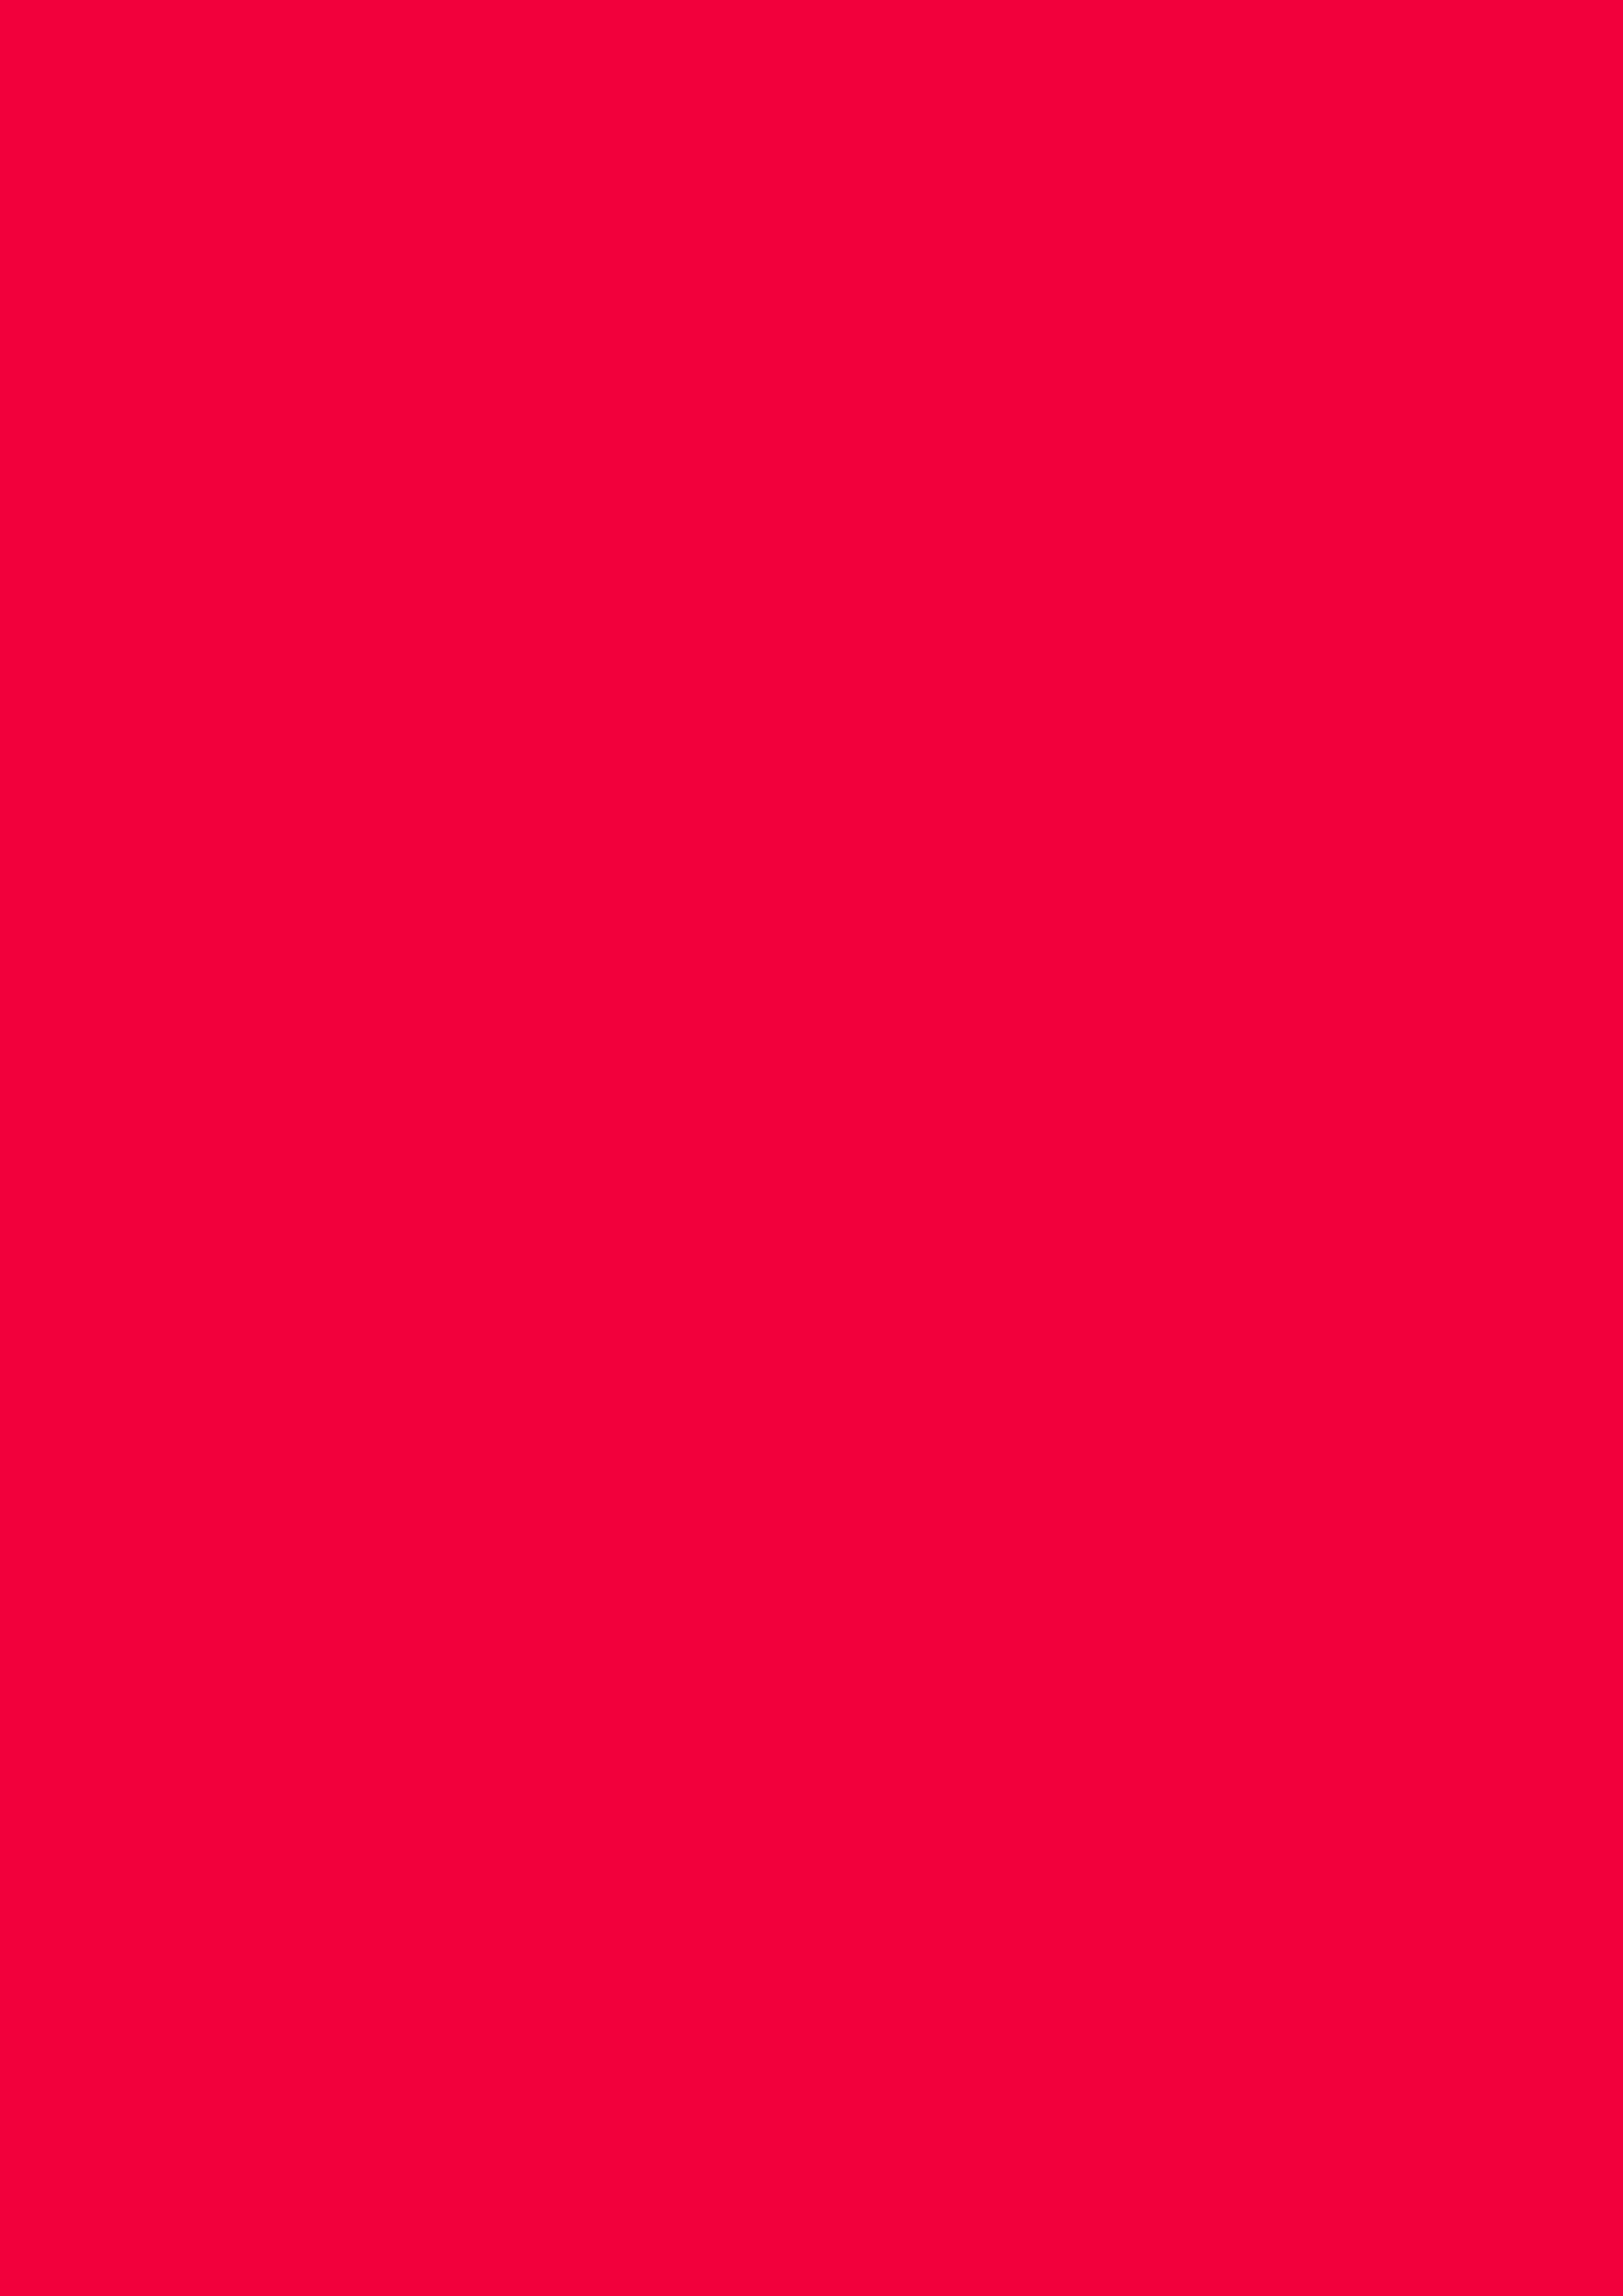 2480x3508 Red Munsell Solid Color Background